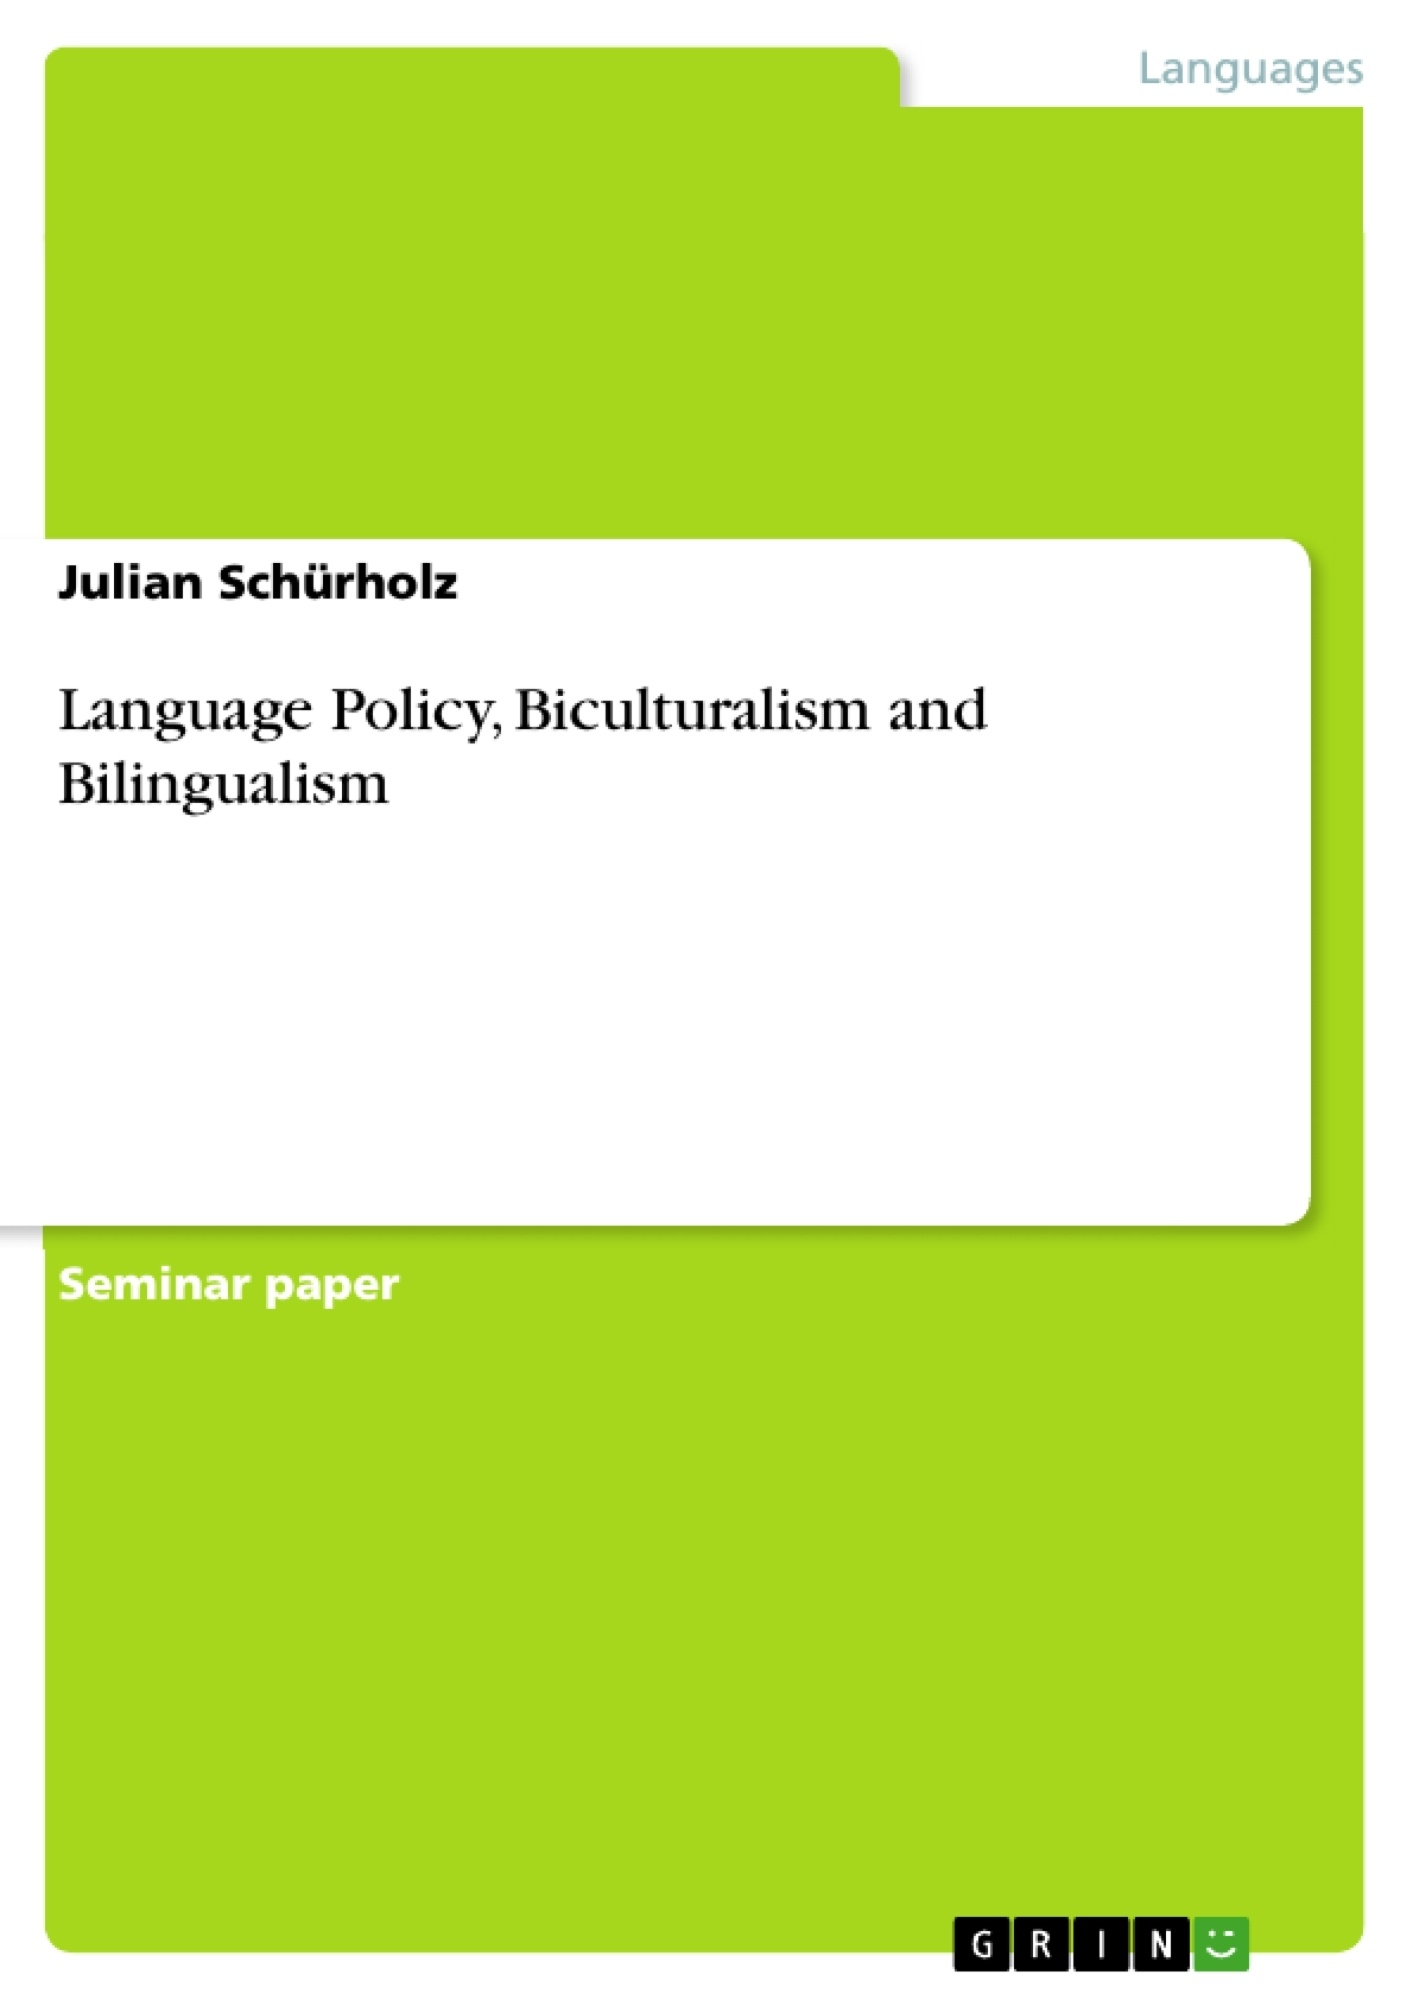 Title: Language Policy, Biculturalism and Bilingualism